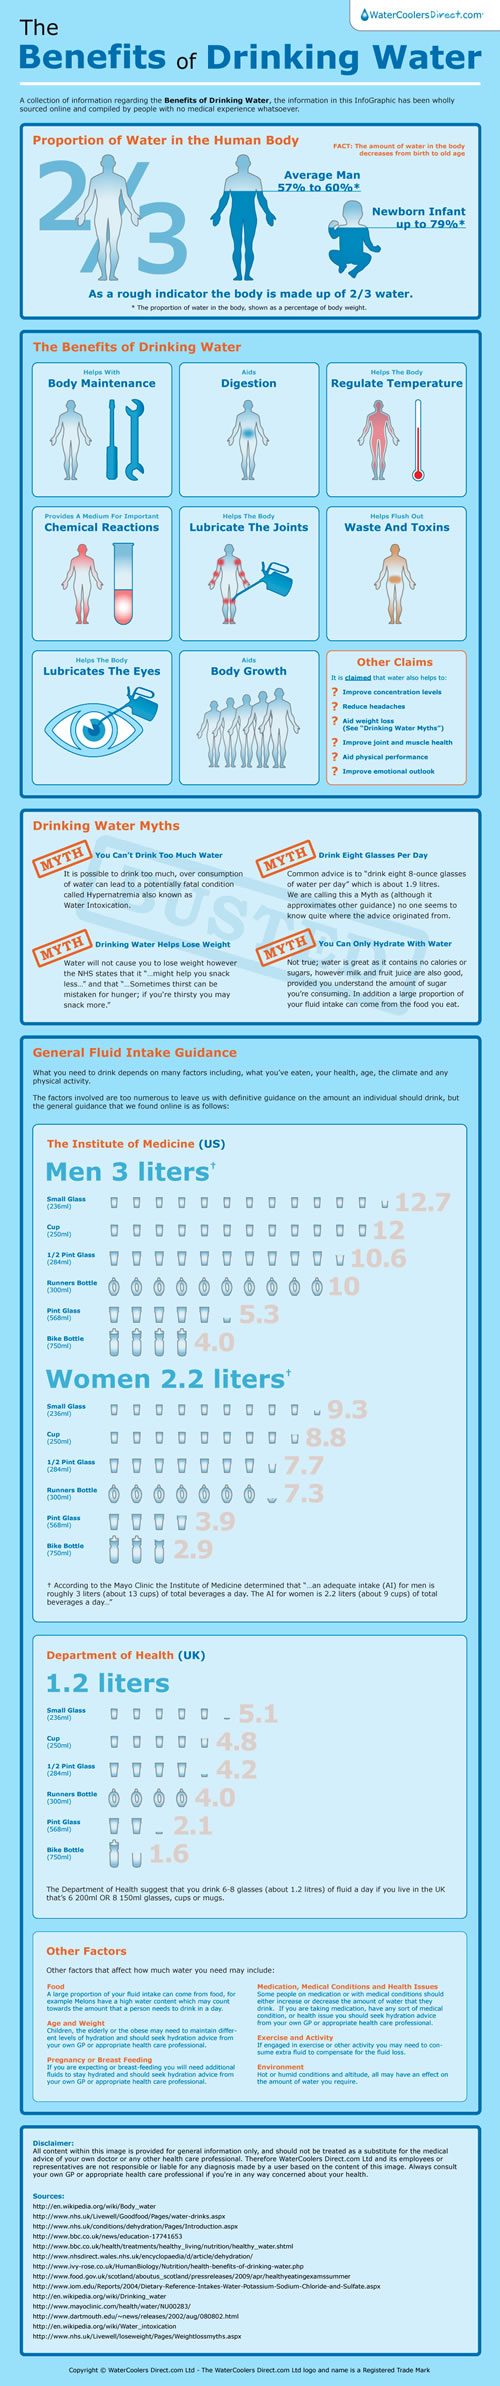 benefits of drinking water infographic normal - Benefits of Drinking Water [InfoGraphic]